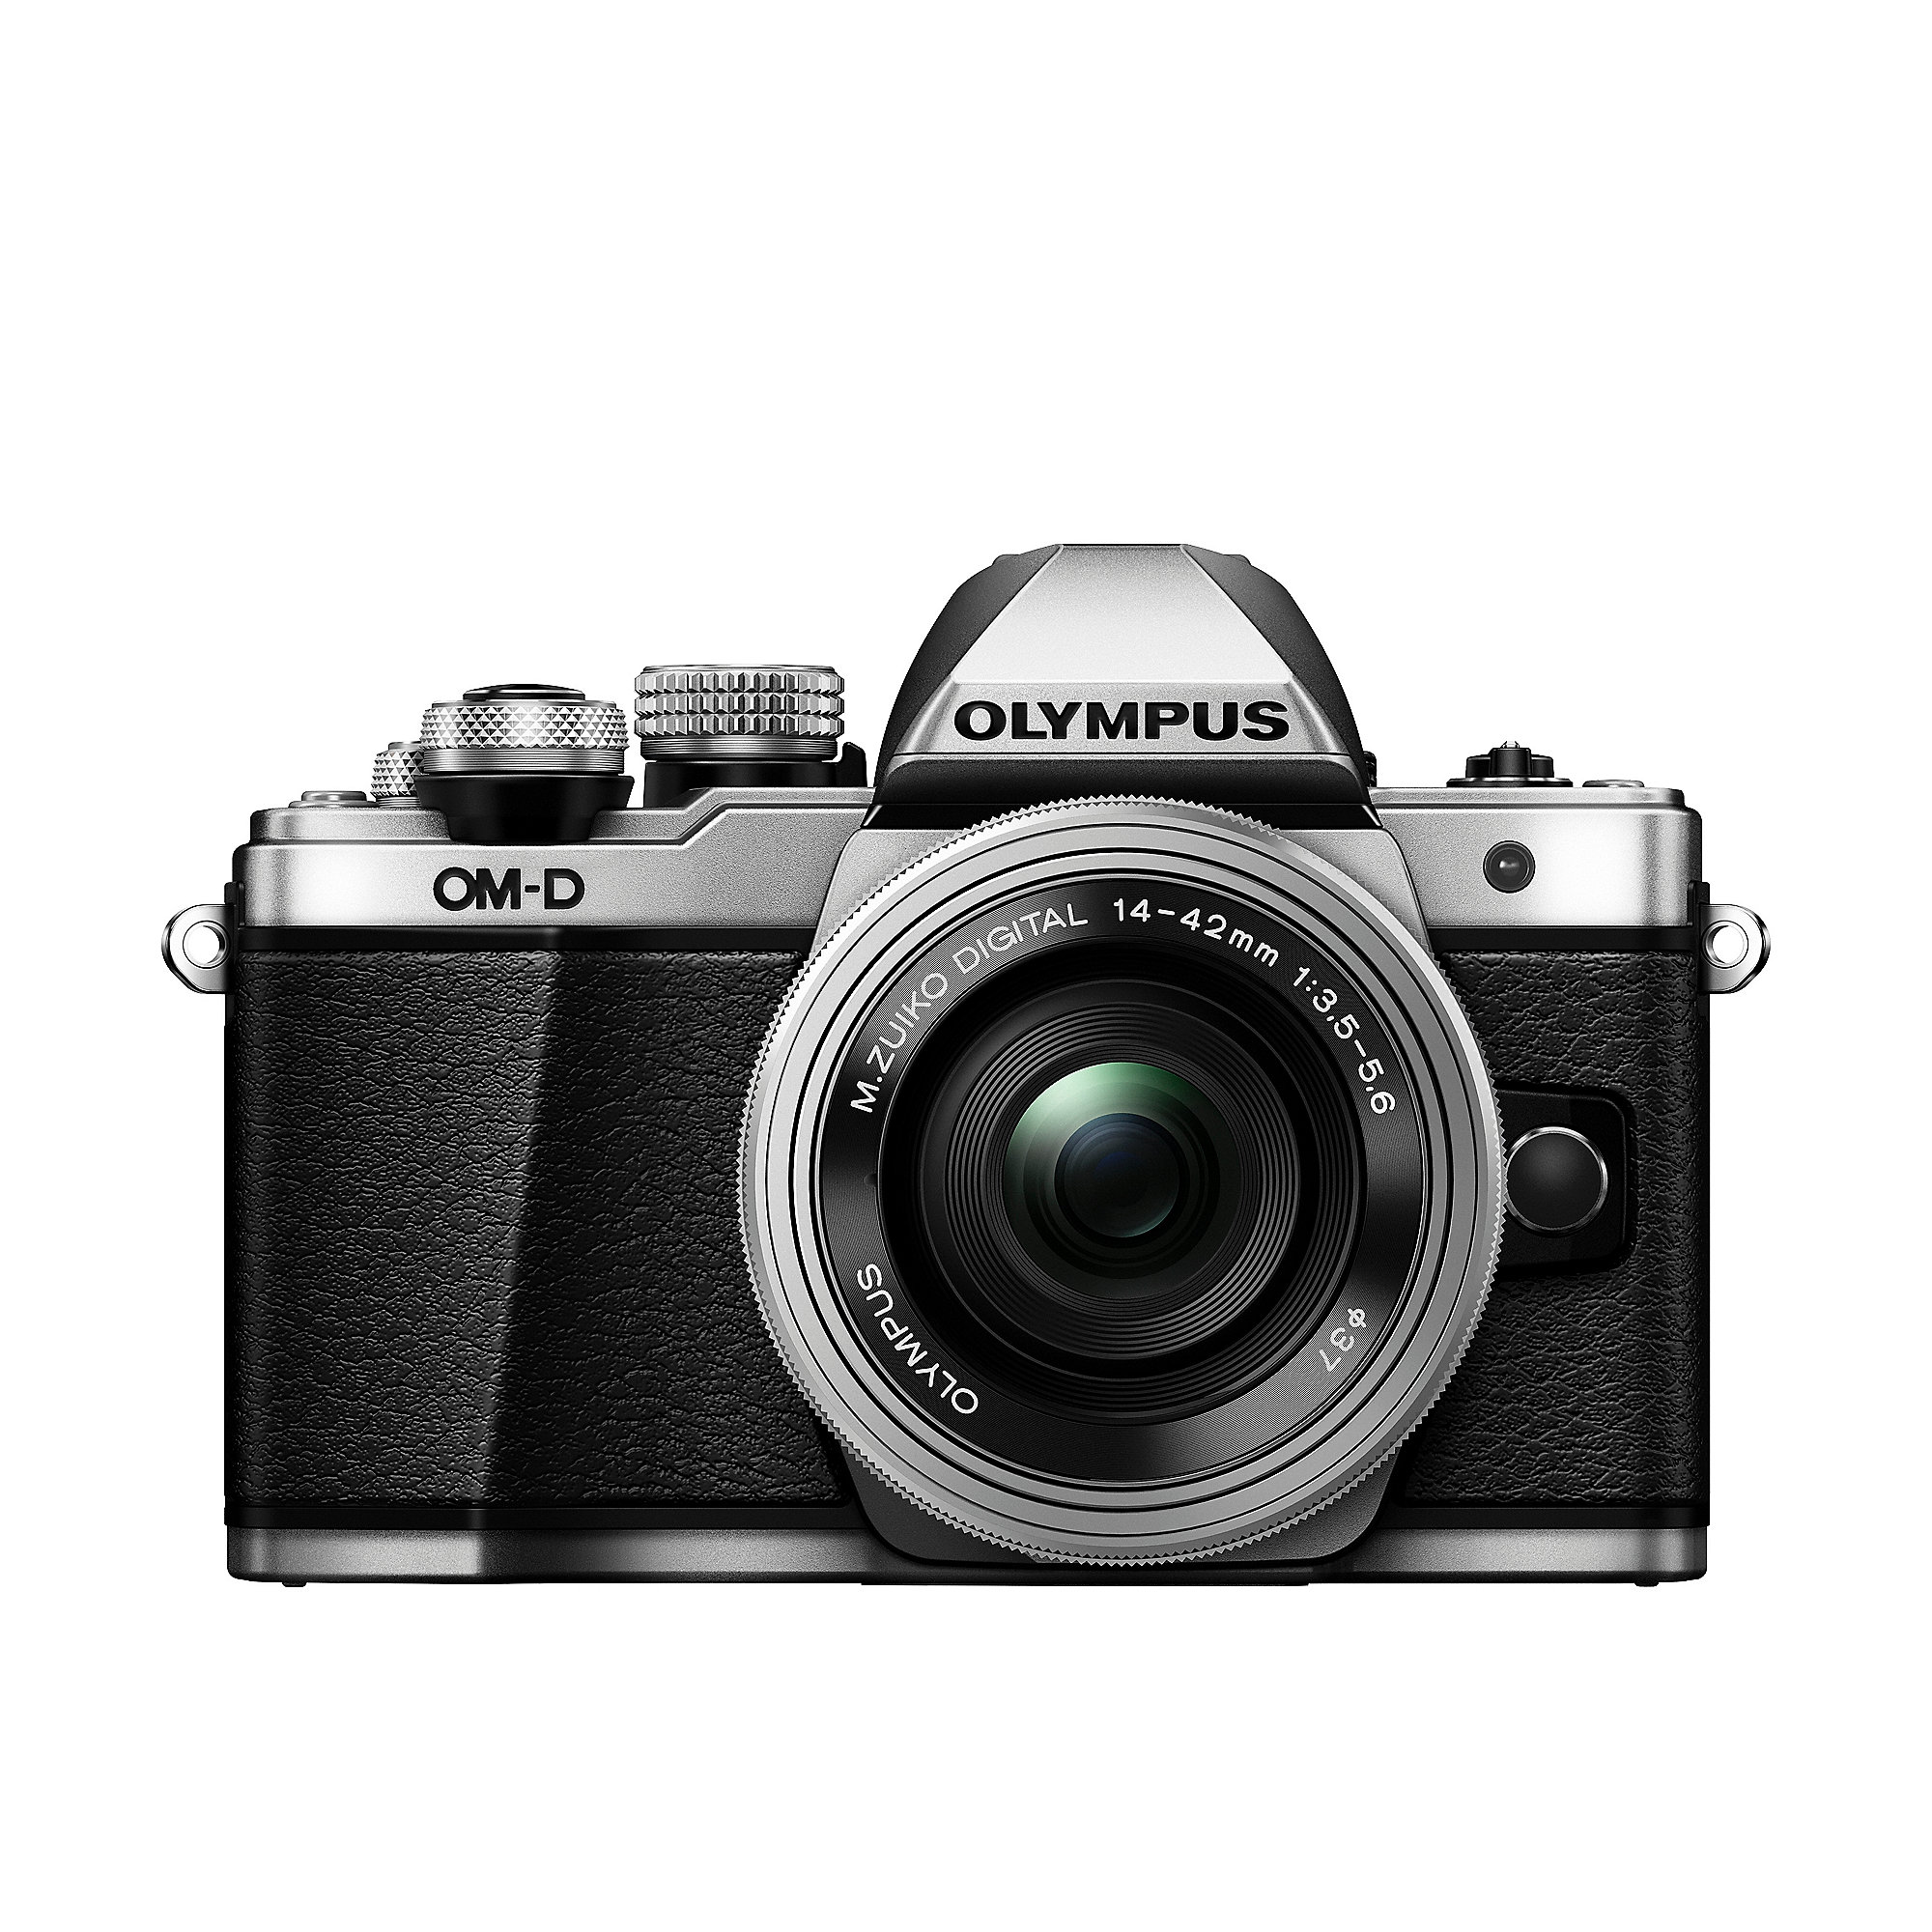 Olympus OM-D E-M10 Mark II Kit 14-42mm EZ-Pancake Digitalkamera silber